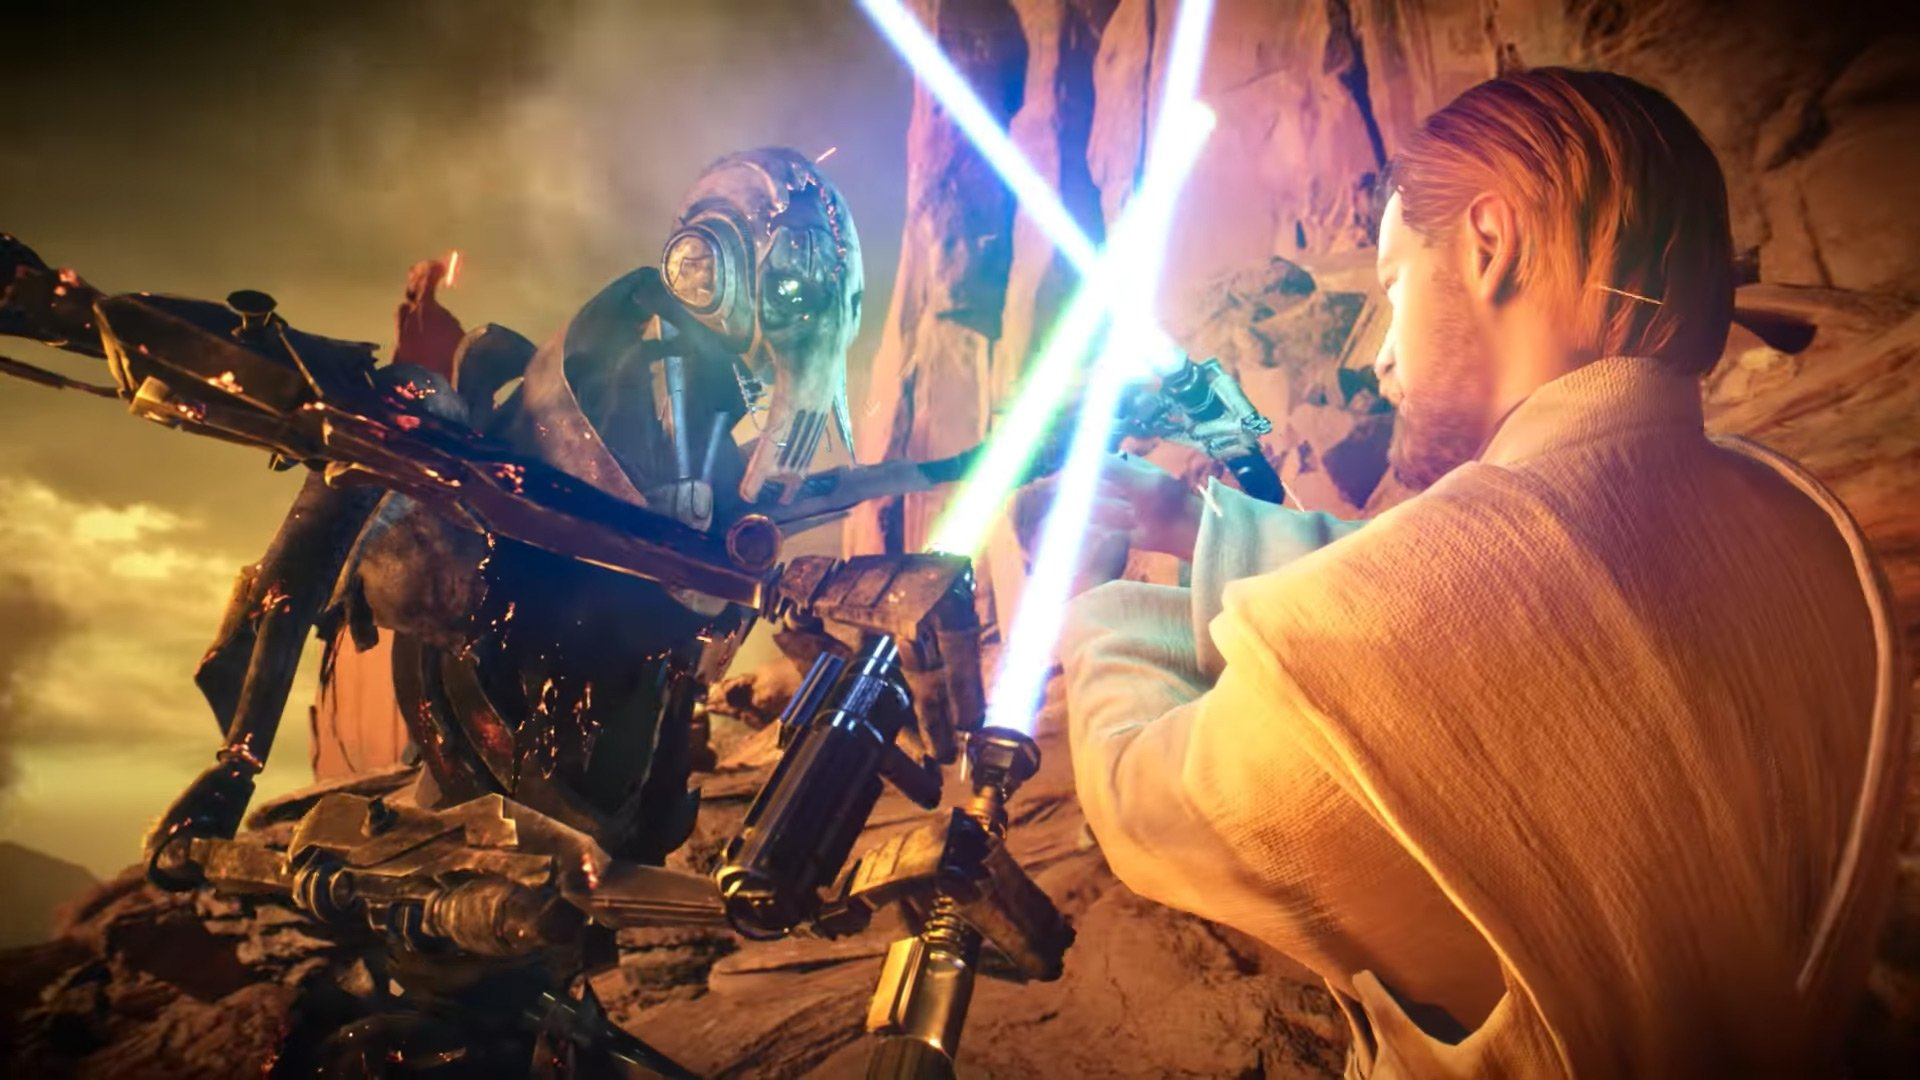 Grievous and Obi-Wan clash in the latest Star Wars Battlefront II trailer screenshot